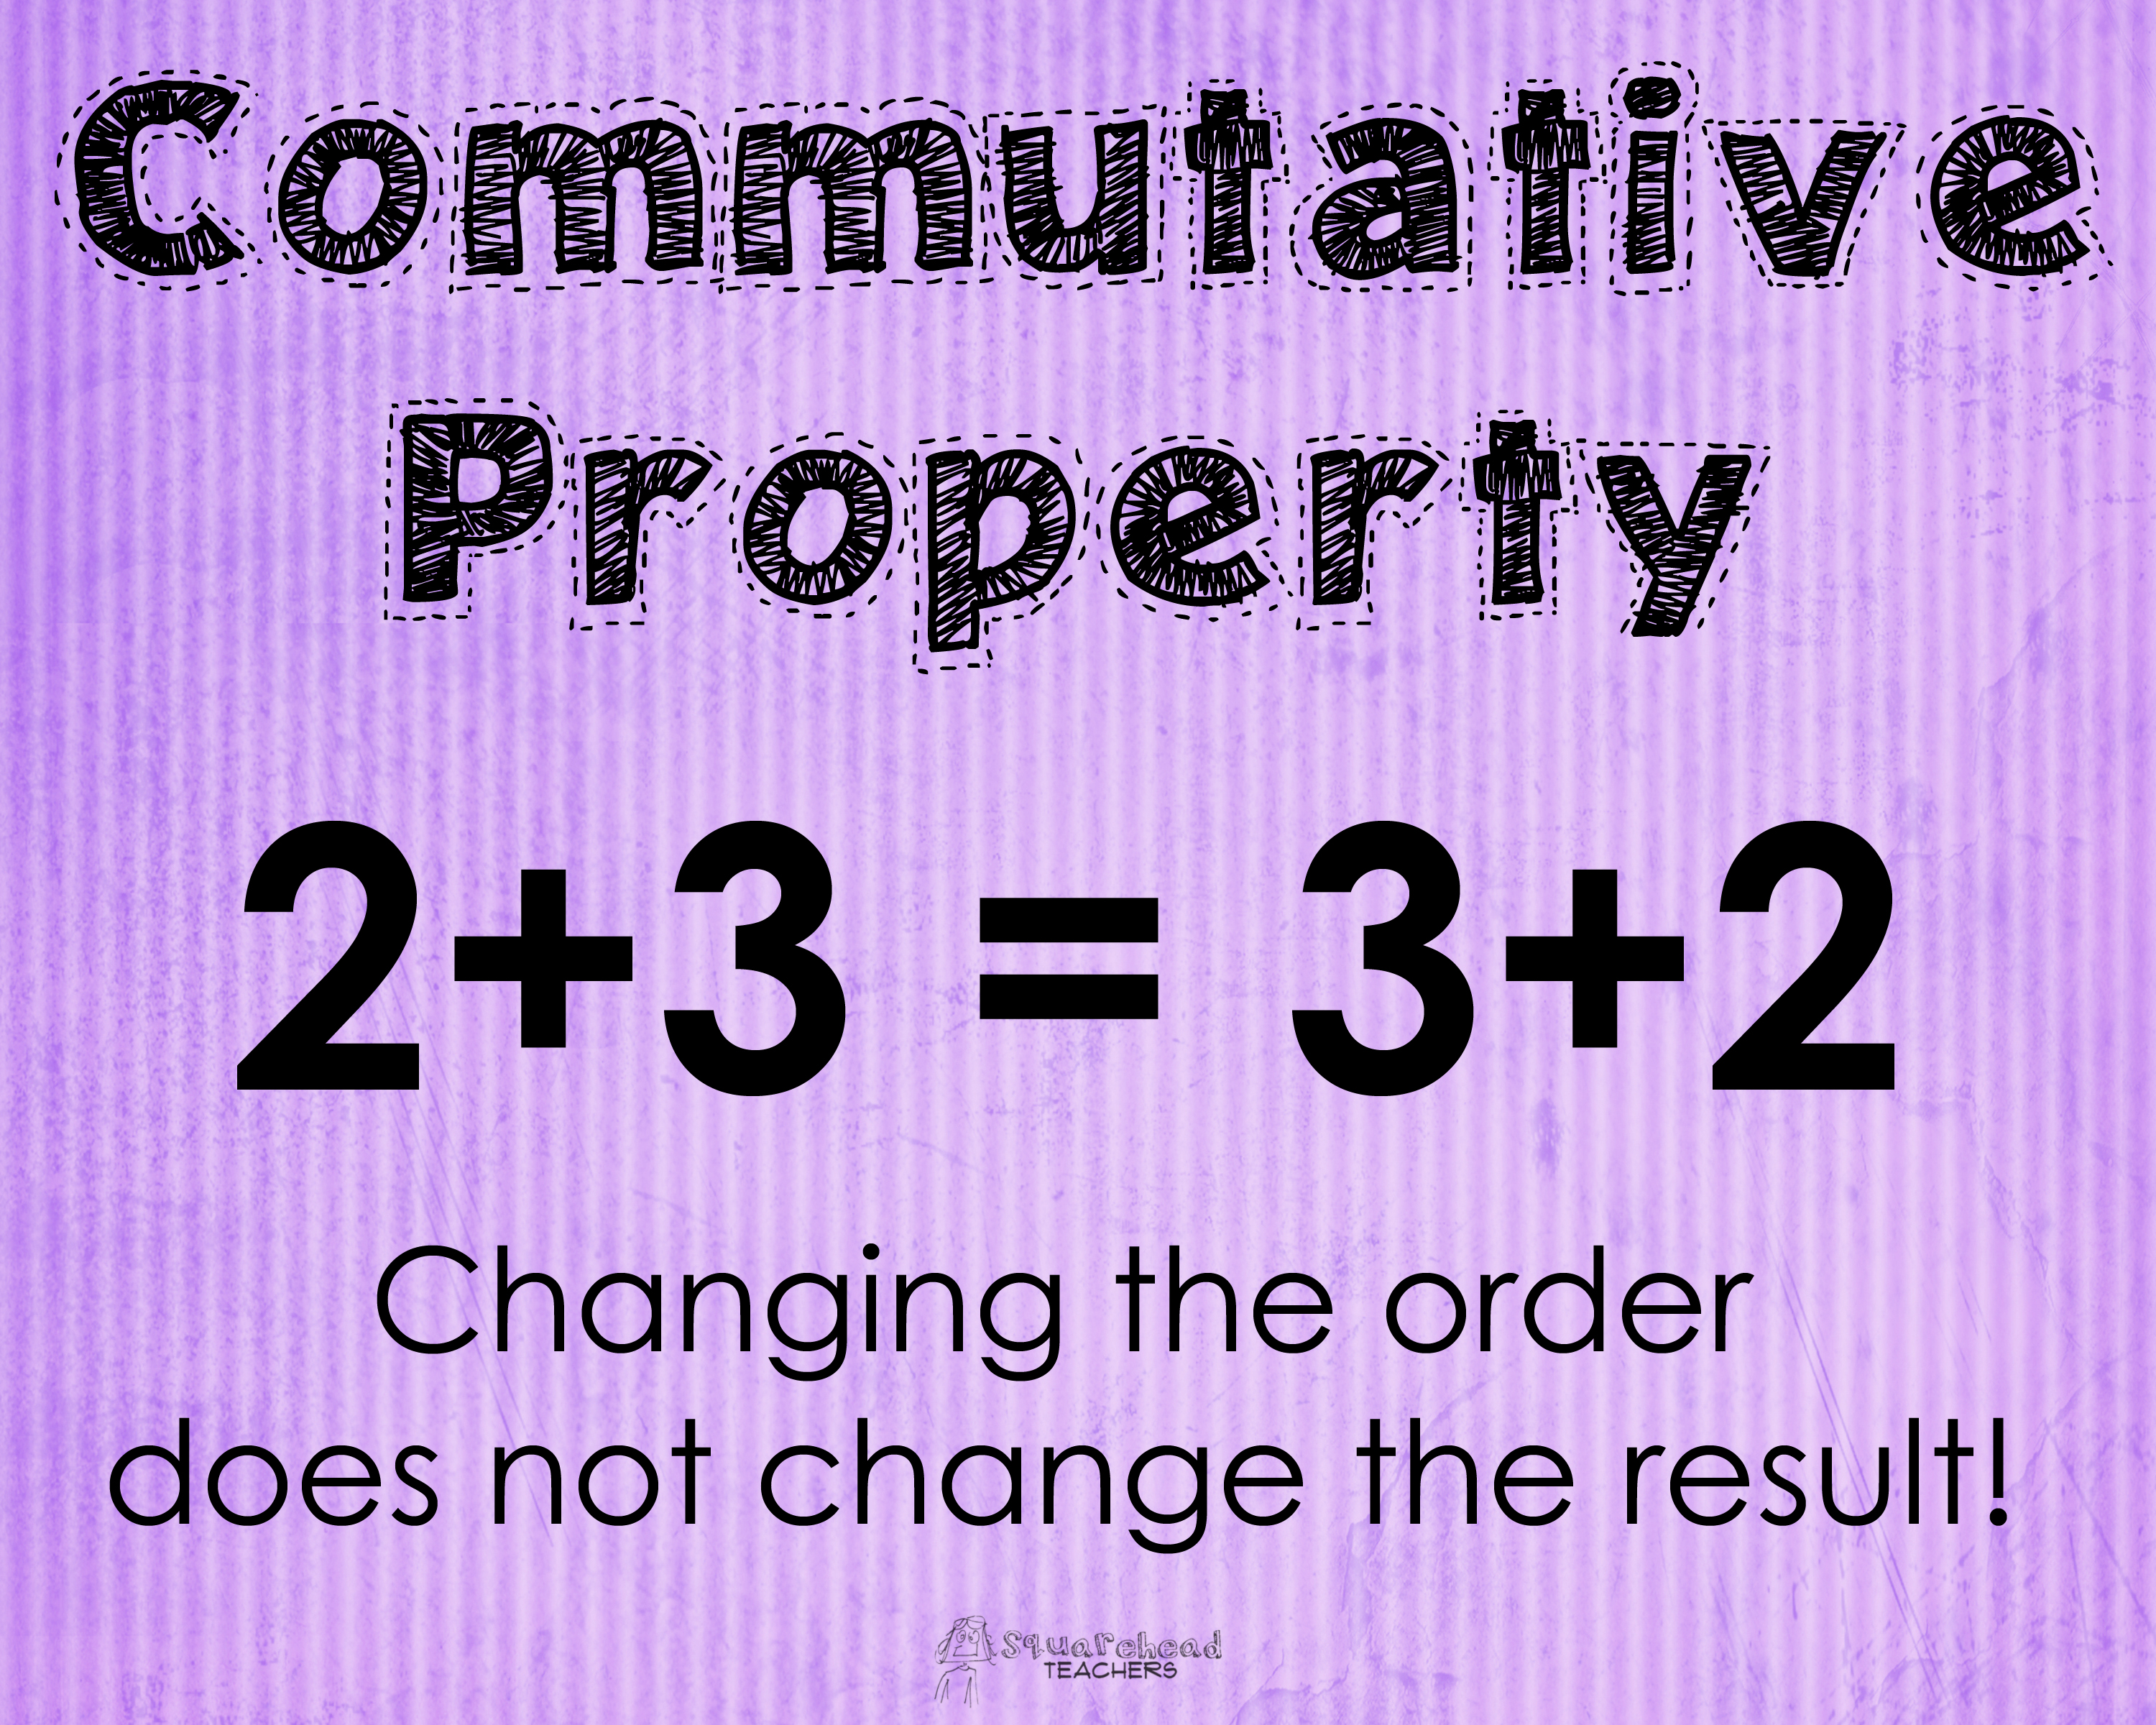 Commutative And Associative Properties Worksheets – Commutative and Associative Properties of Addition Worksheets